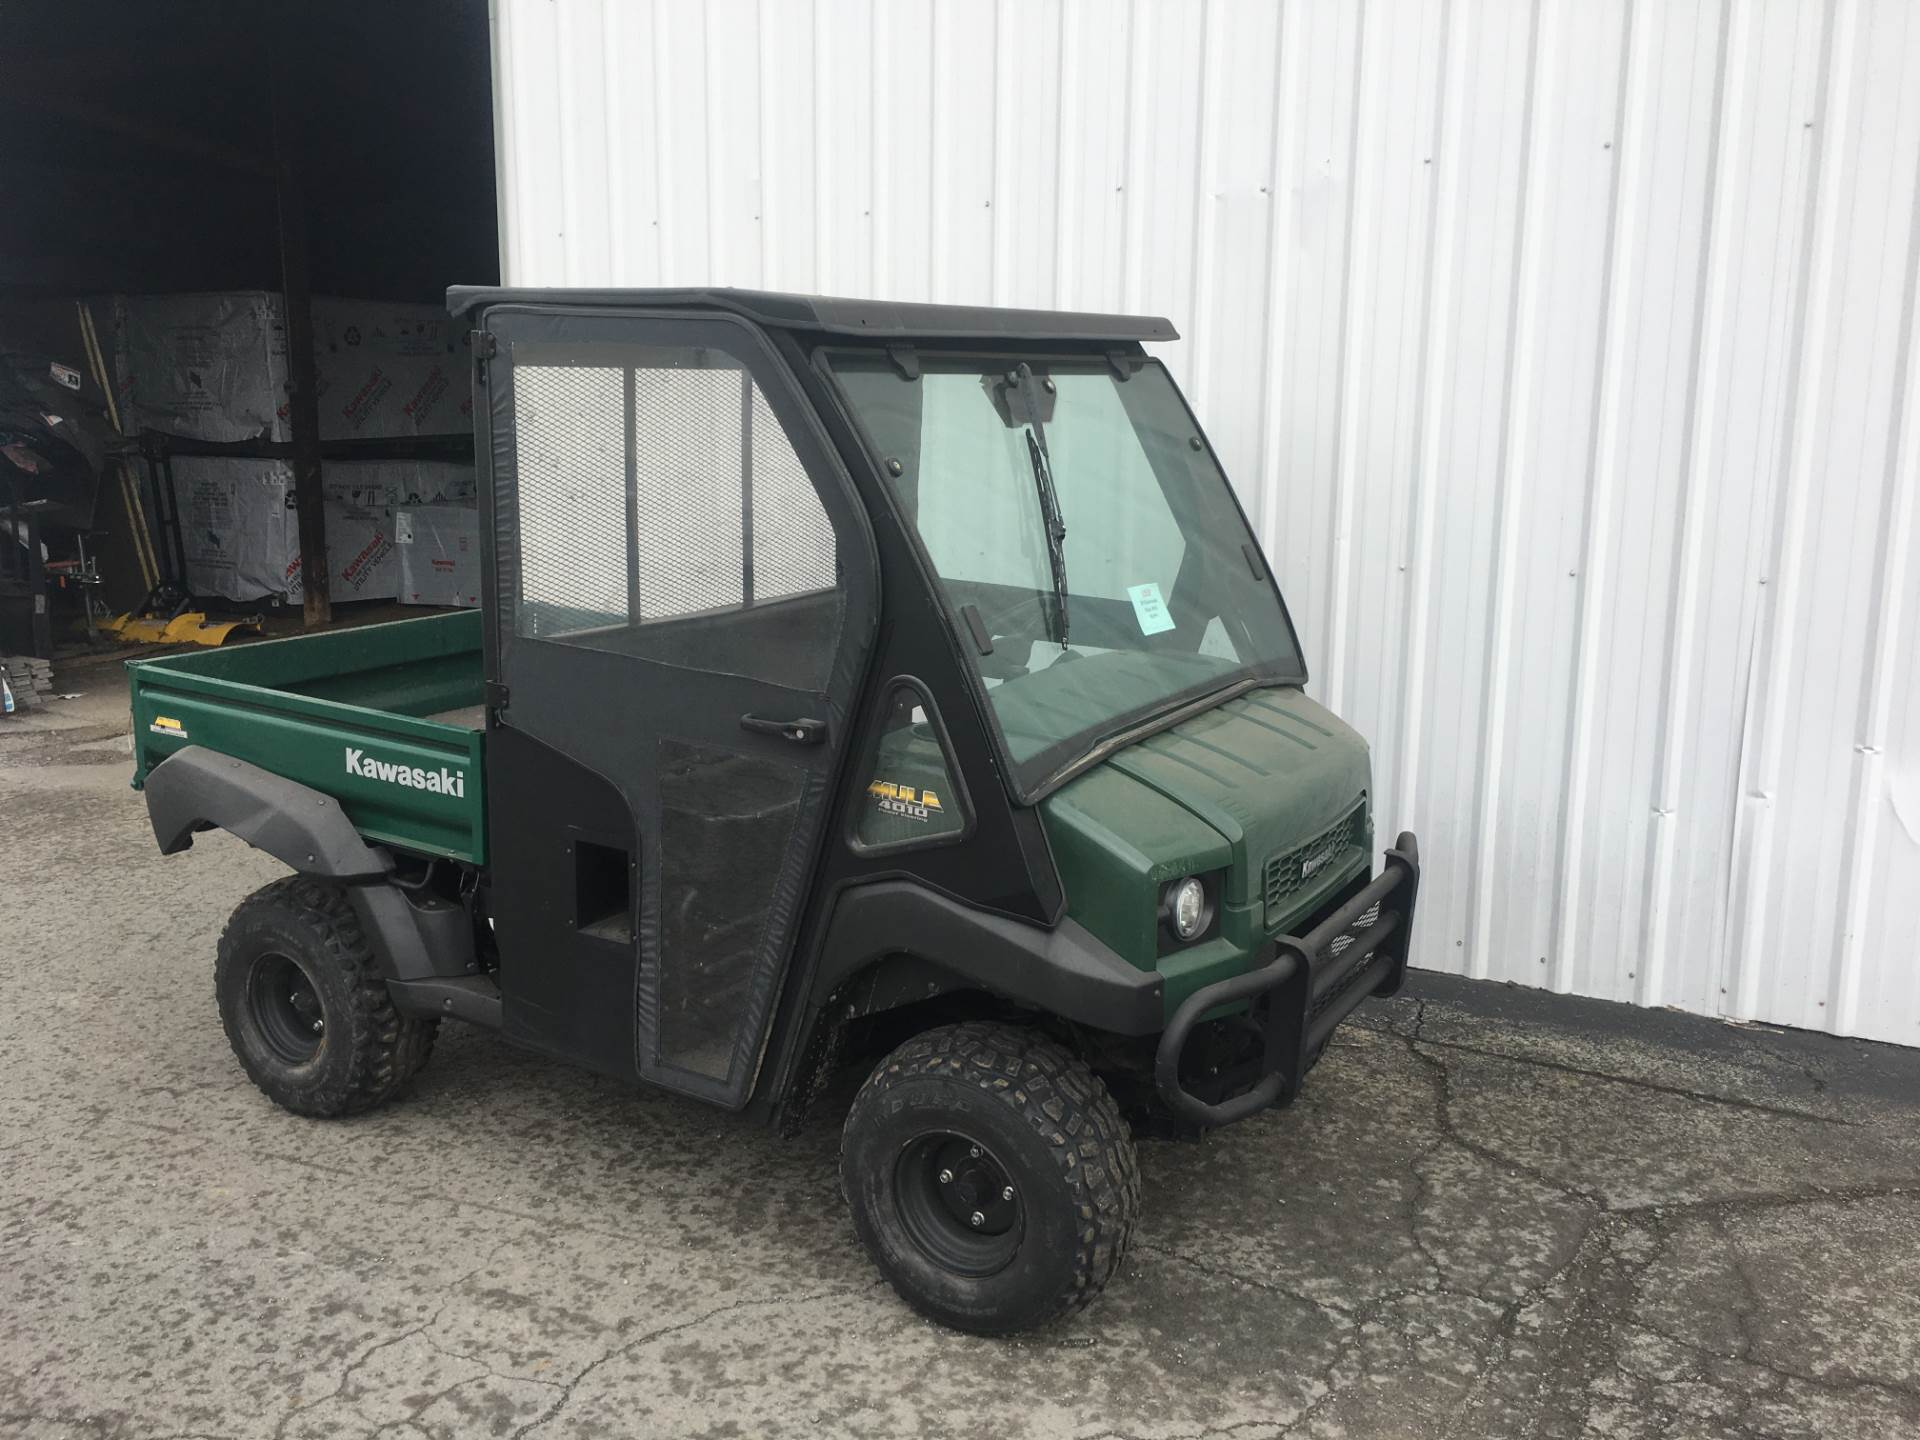 2014 Kawasaki Mule™ 4010 4x4 in Walton, New York